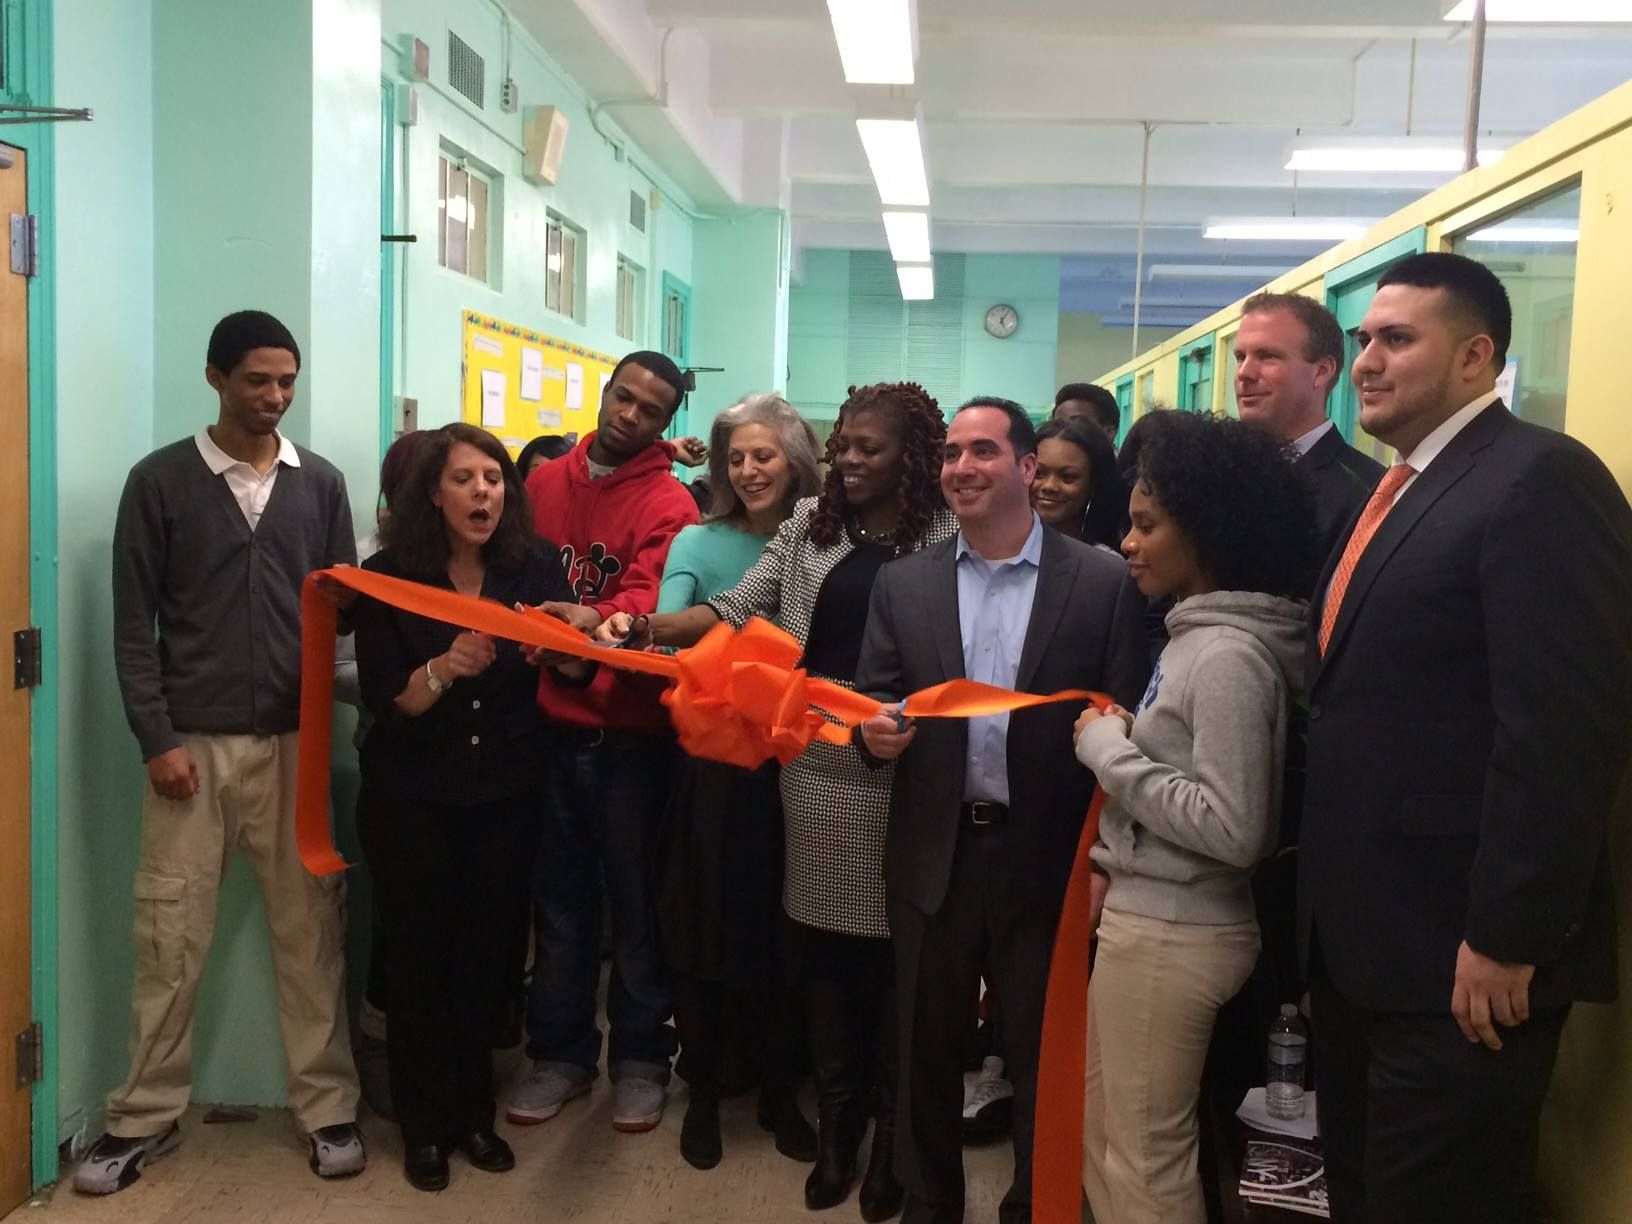 Today we celebrated our partnership with Publicolor and EcoMediaCBS with the unveiling of the newly painted August Martin High School in South Jamaica, Queens and a breakfast with the amazing students.